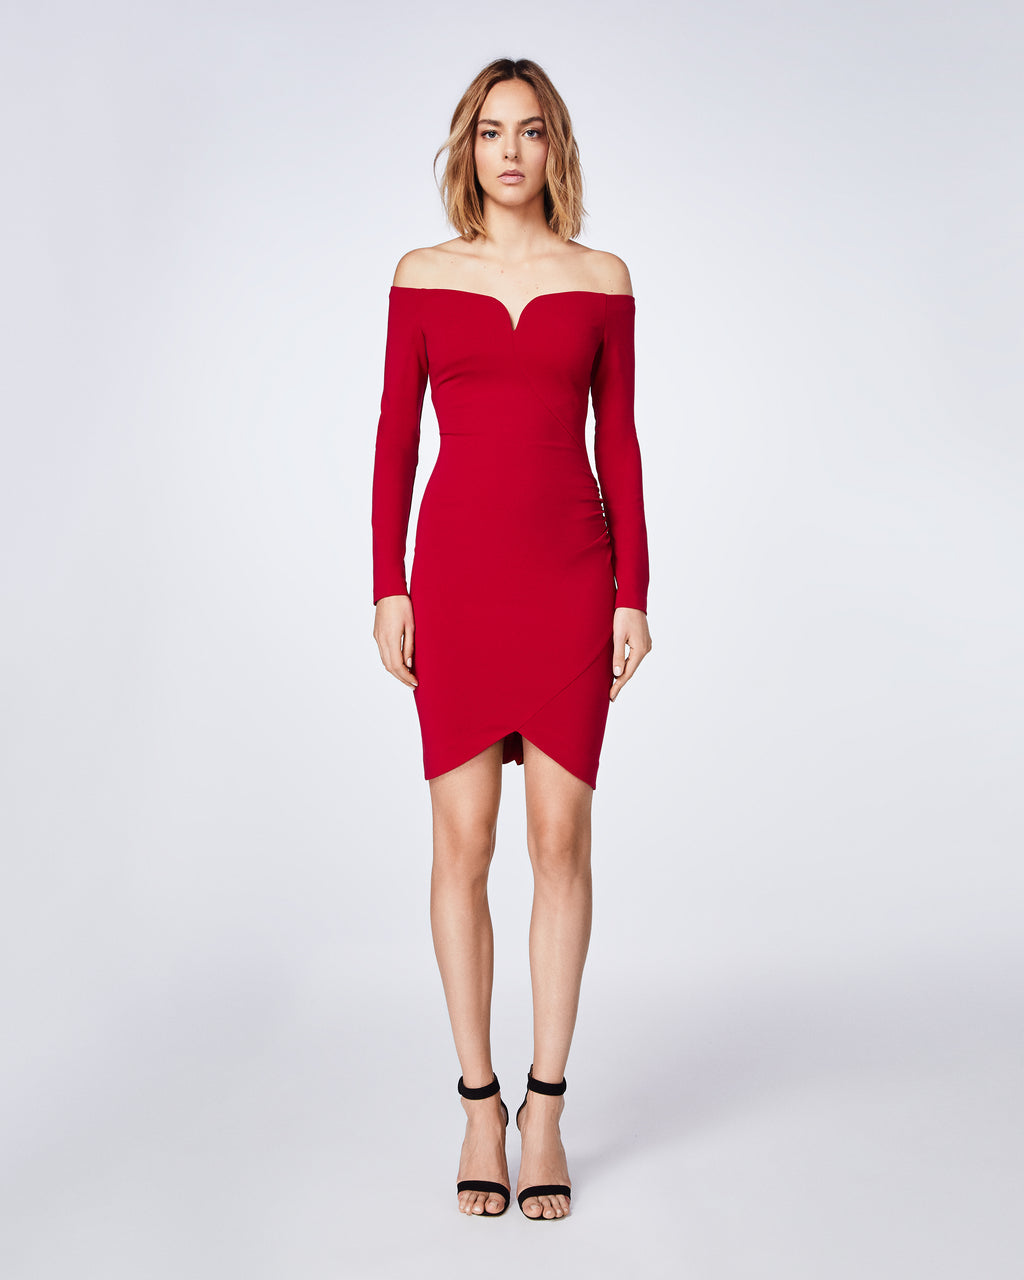 BT10117 - JERSEY OFF SHOULDER DRESS - dresses - long - In a fitted off the shoulder silhoutte, this long sleeve dresse features sweetheart neckline. Make a statement with the red dress for holiday party.